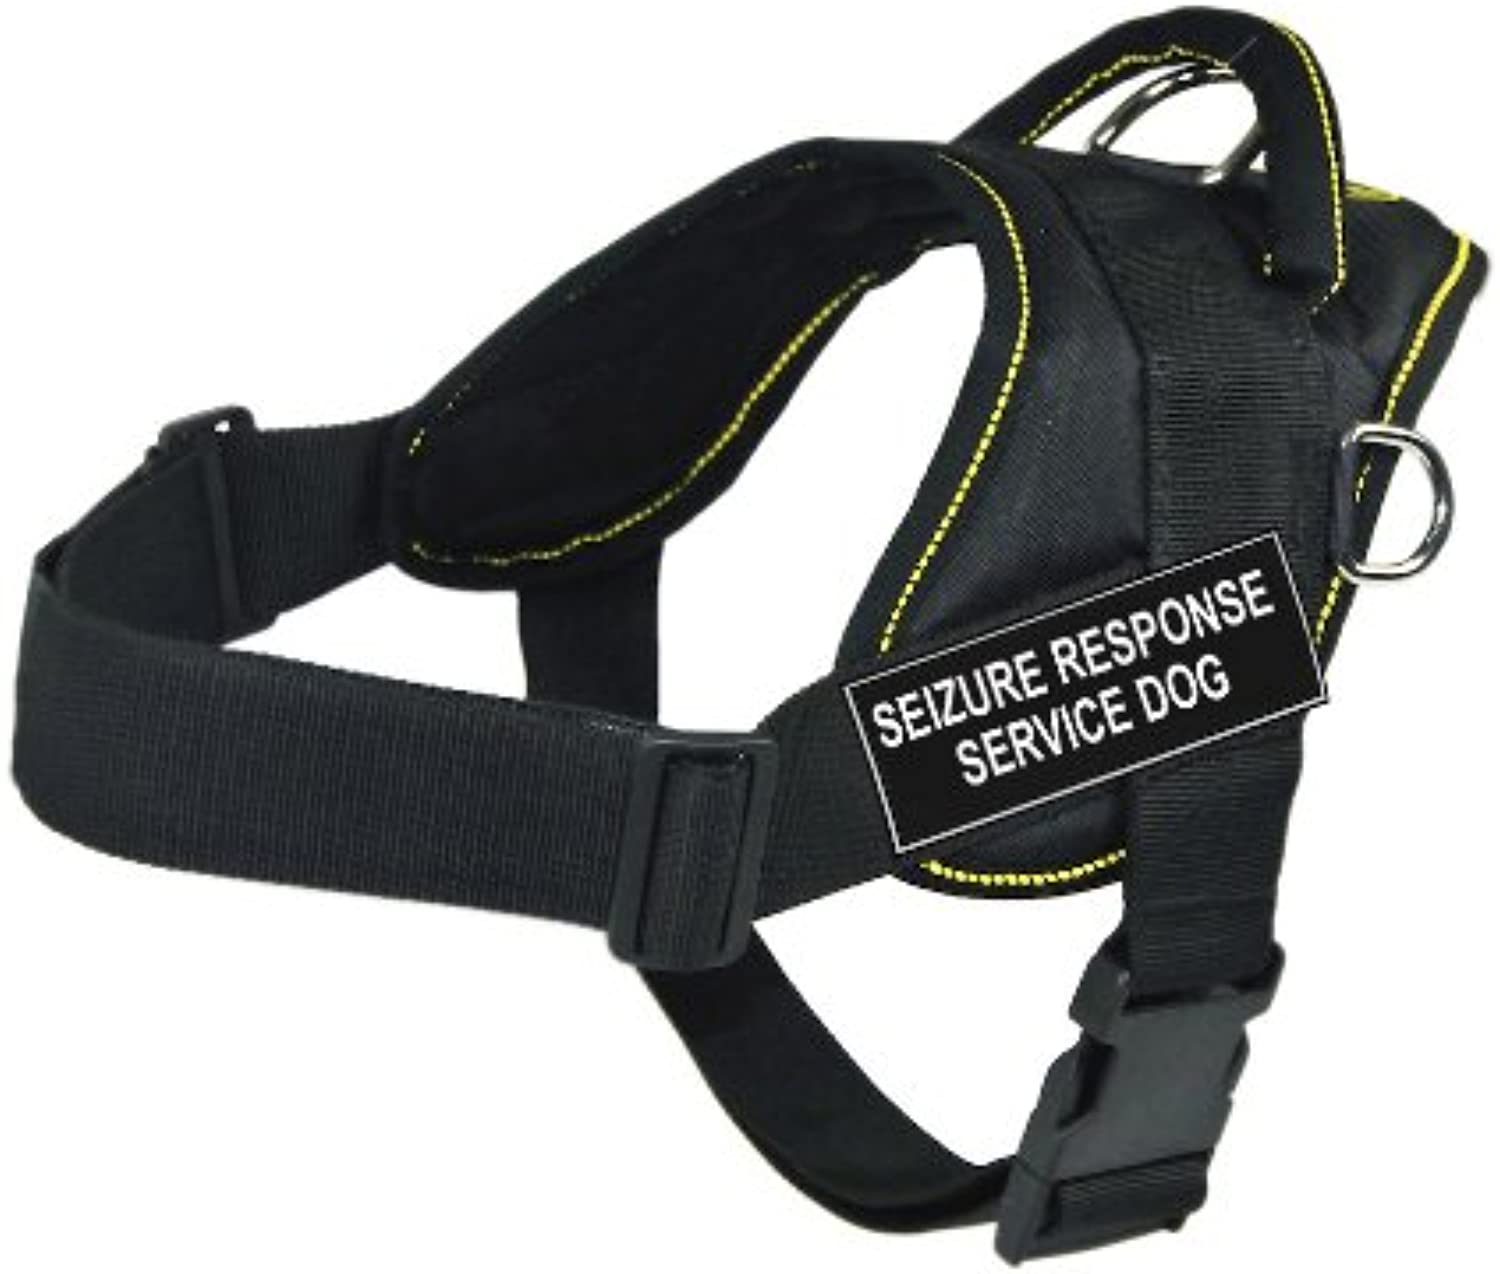 Dean & Tyler   DT Fun   Small, fits girths  22 inches to 27 inches, Black with Yellow Trim Nylon Harness, Pair of SEIZURE RESPONSE SERVICE DOG Patches